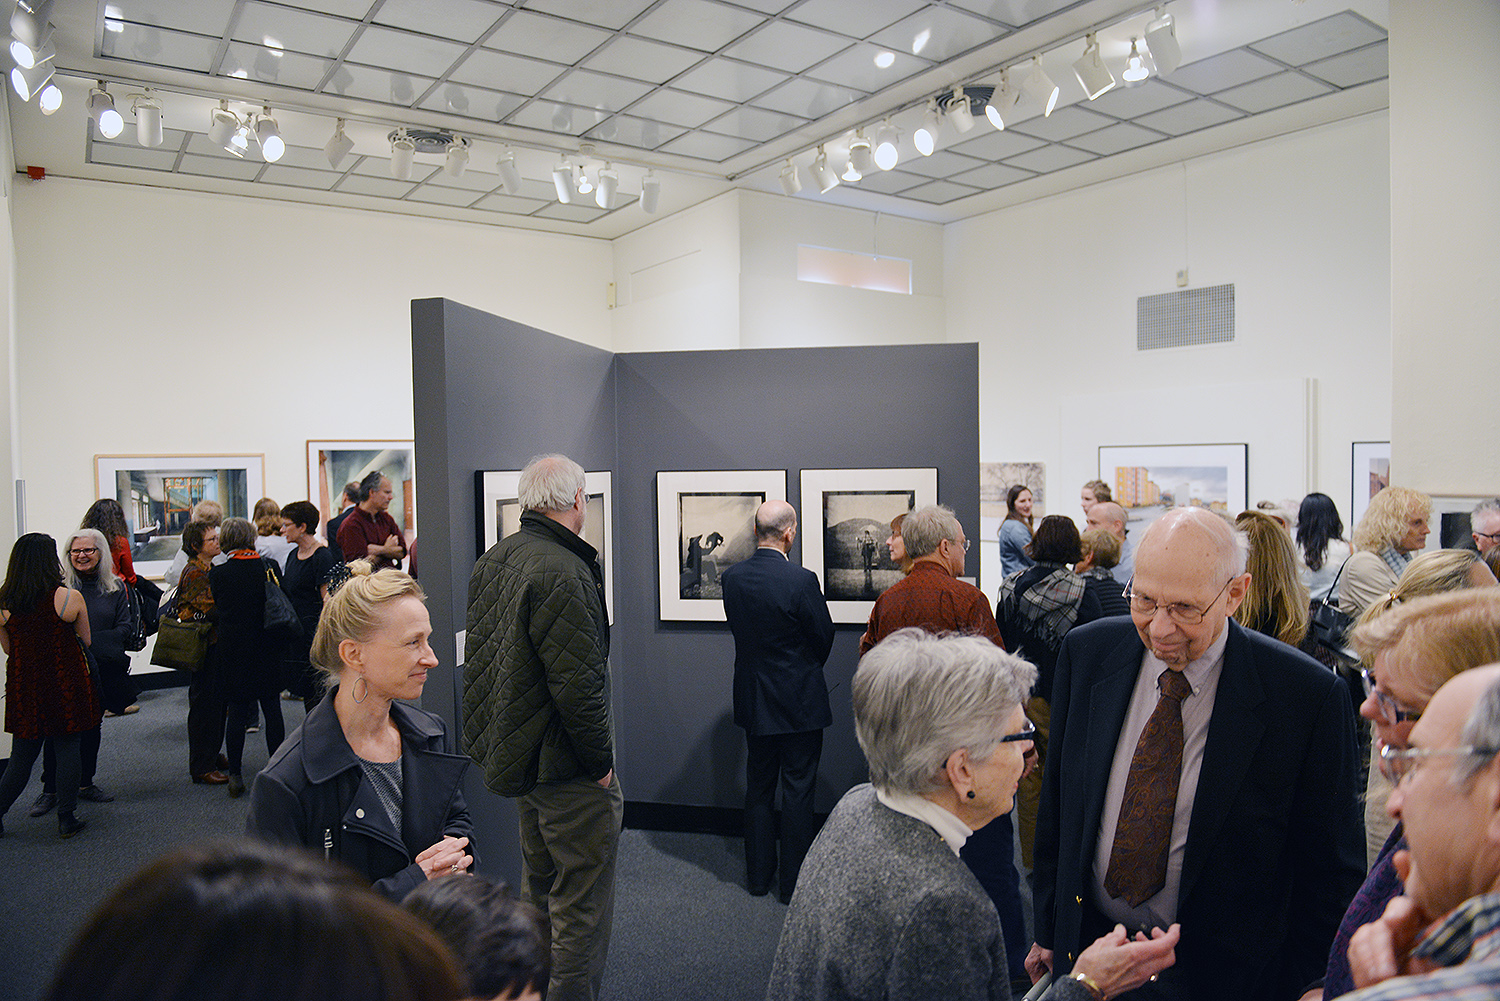 eve_gallery_opening_2017-0330171950